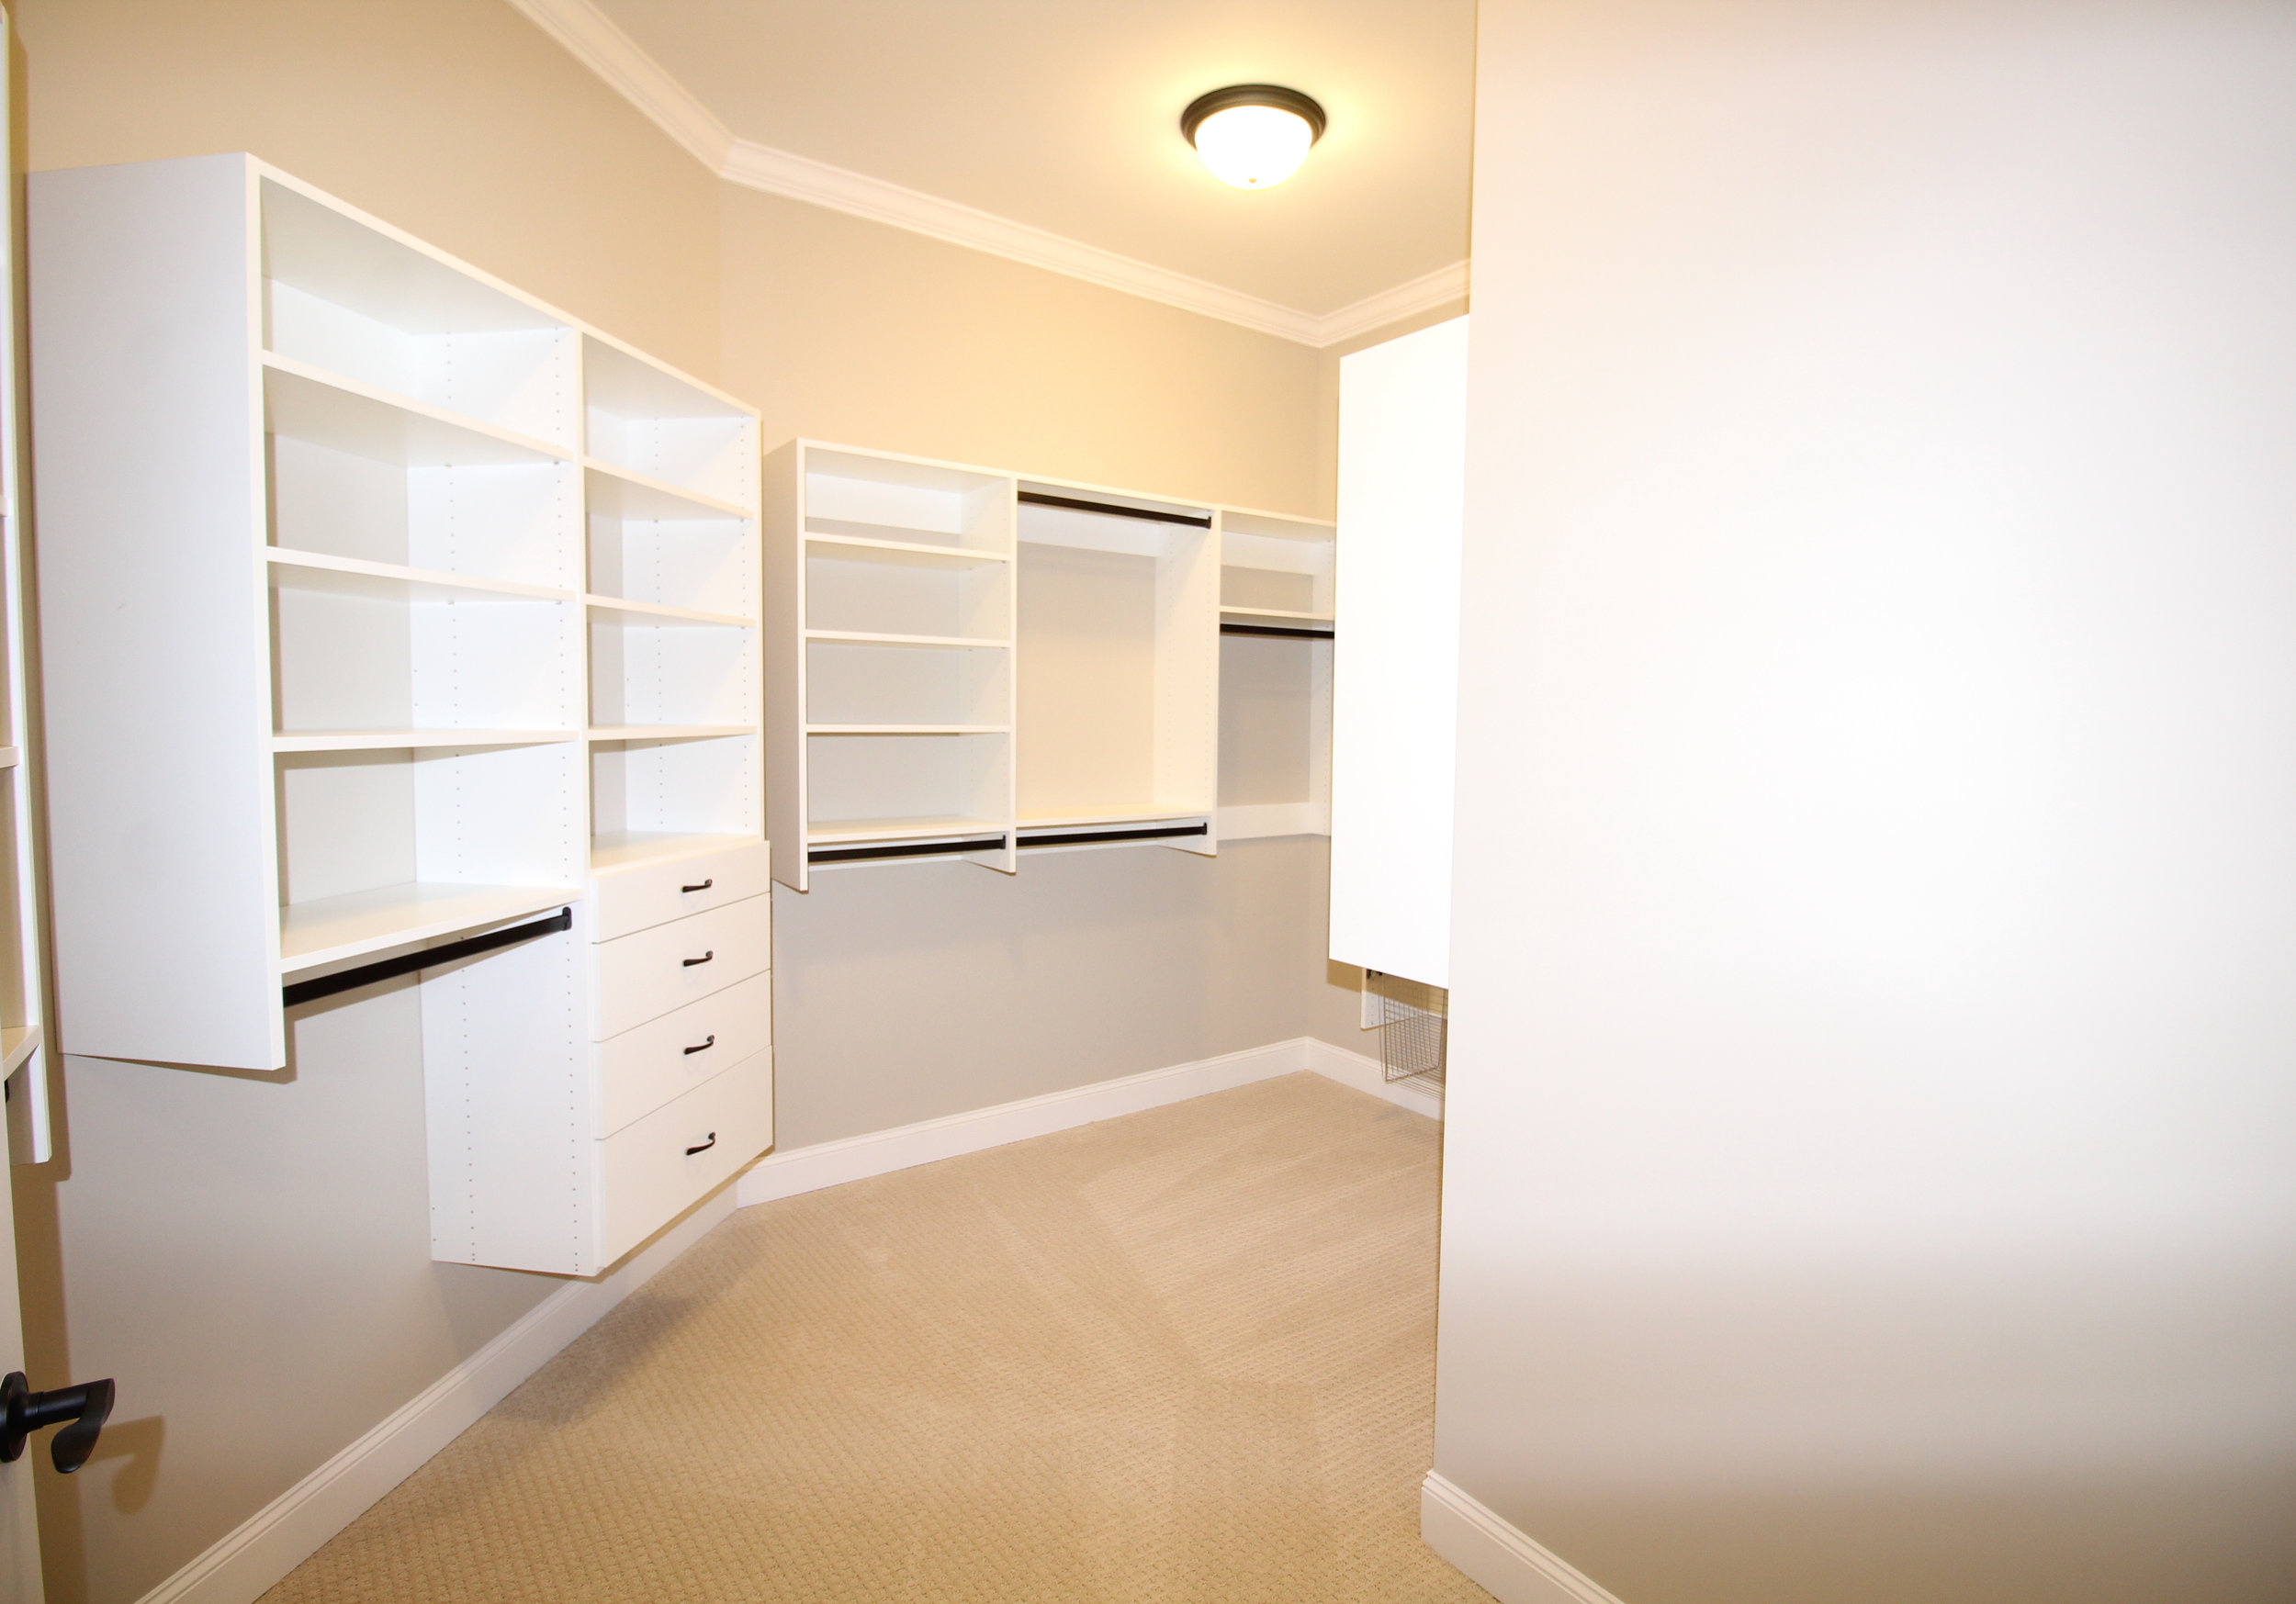 over-sized-master-closet-built-in-shelves-1756-greenleffe-drive-statham-ga-30666-the-georgia-club-oconee-county-oconee-springs-athens-area-home-for-sale-courtyard-homes.JPG